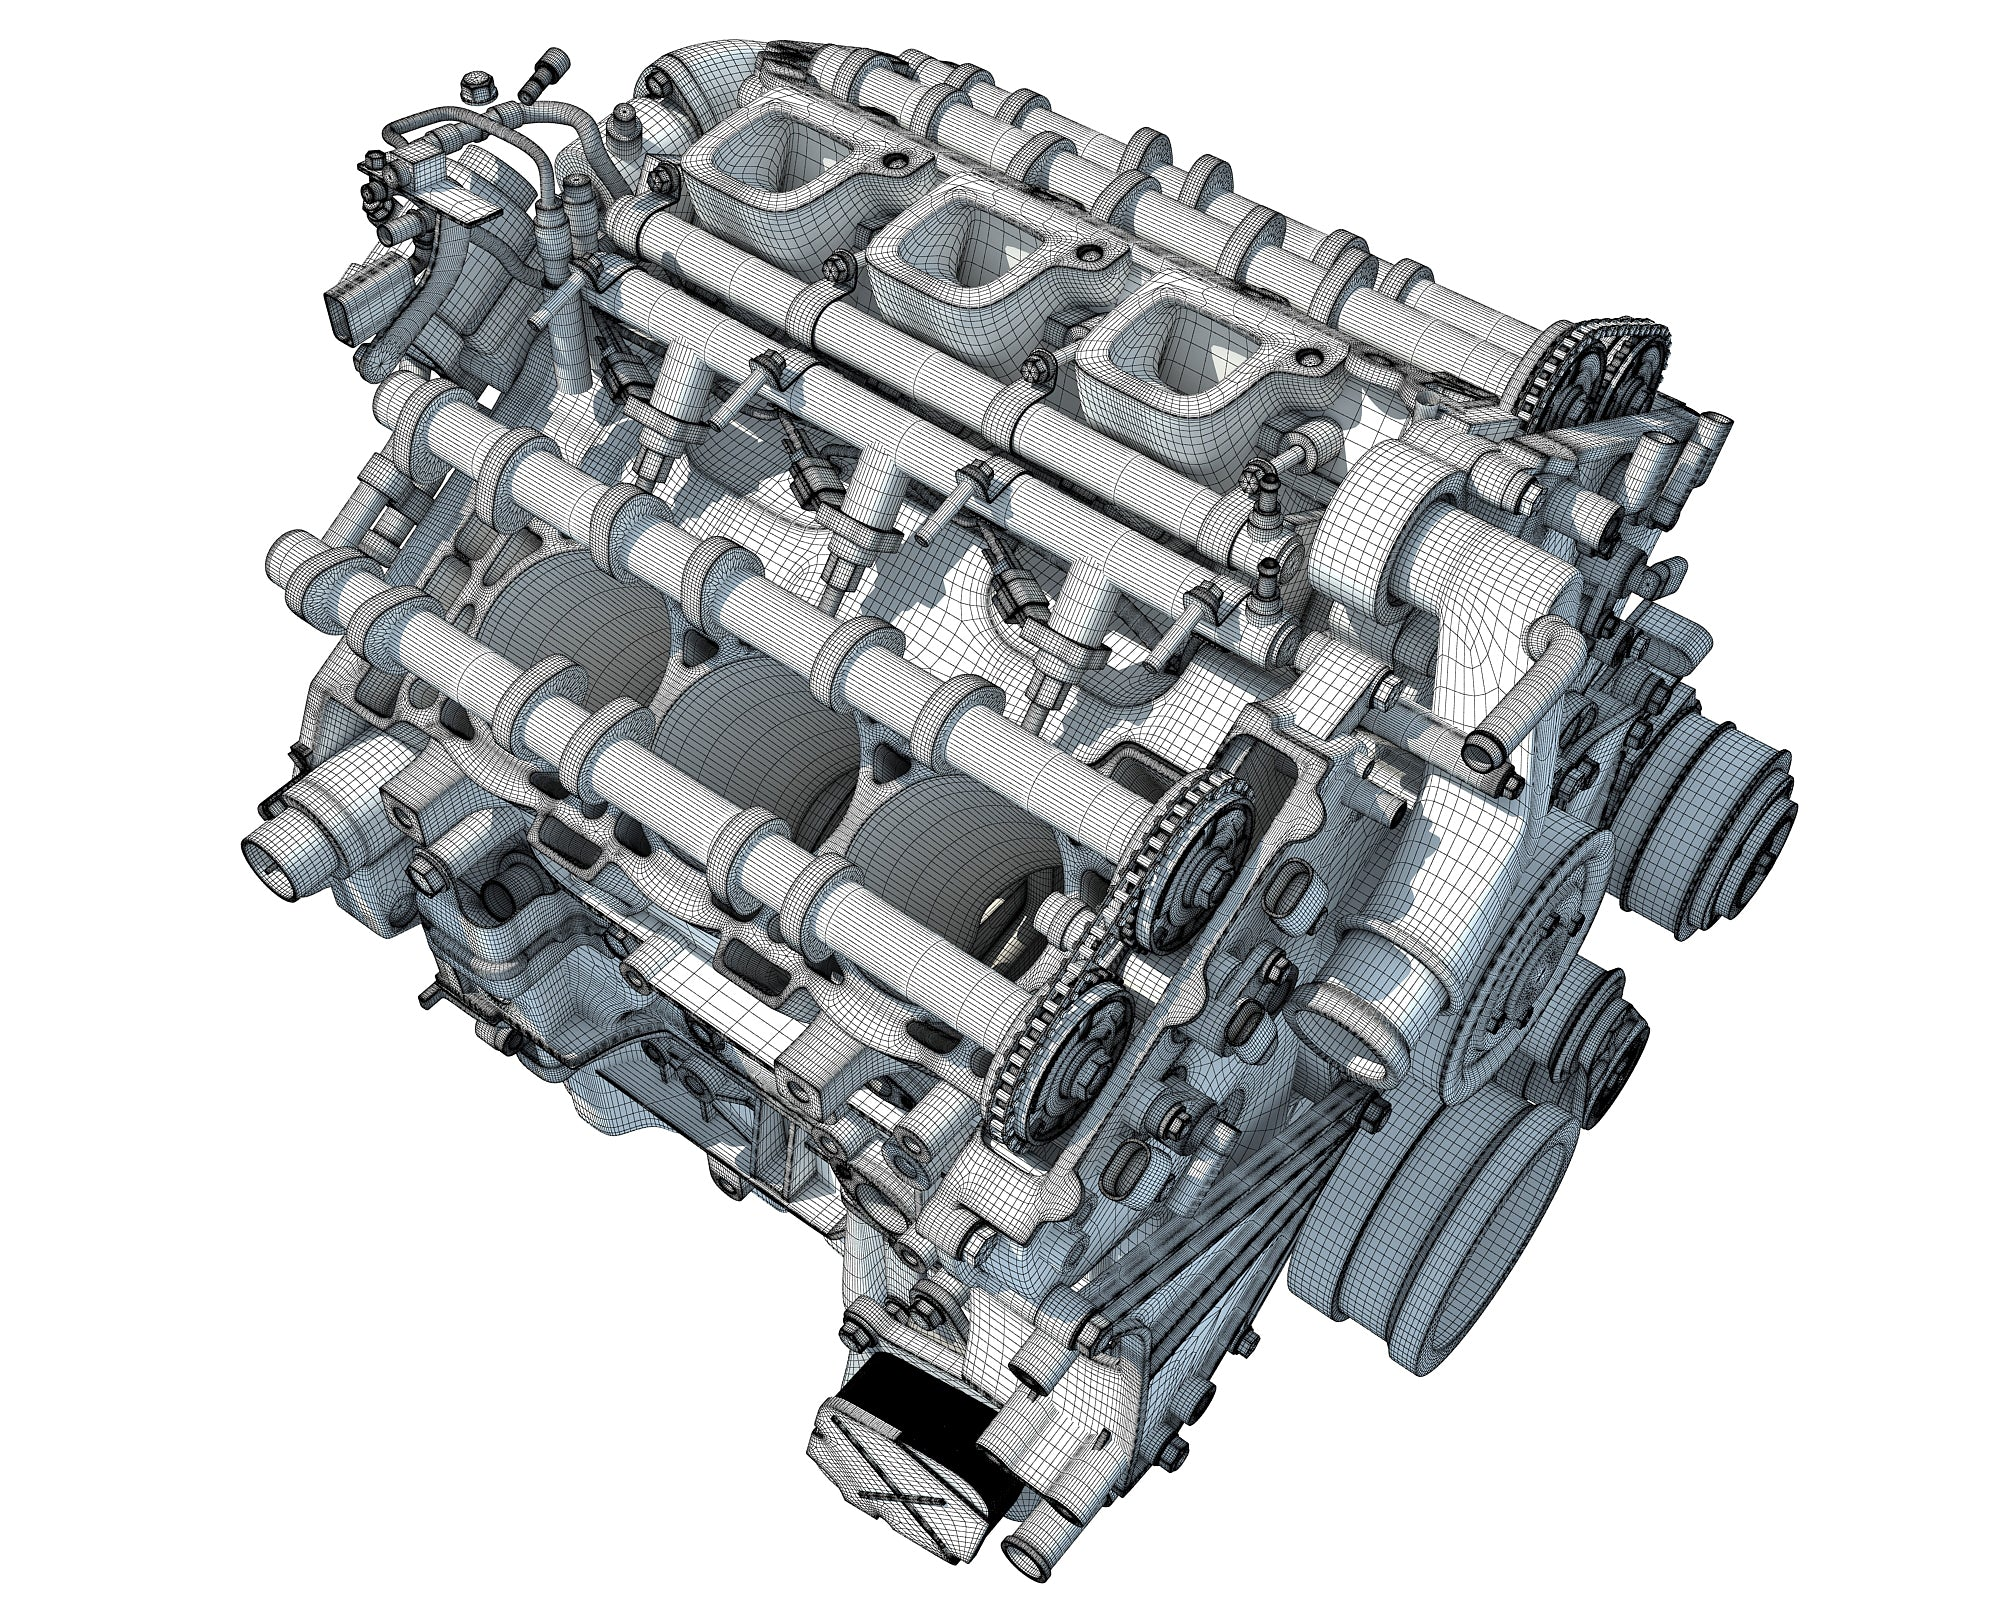 Cadillac TwinPower Engine